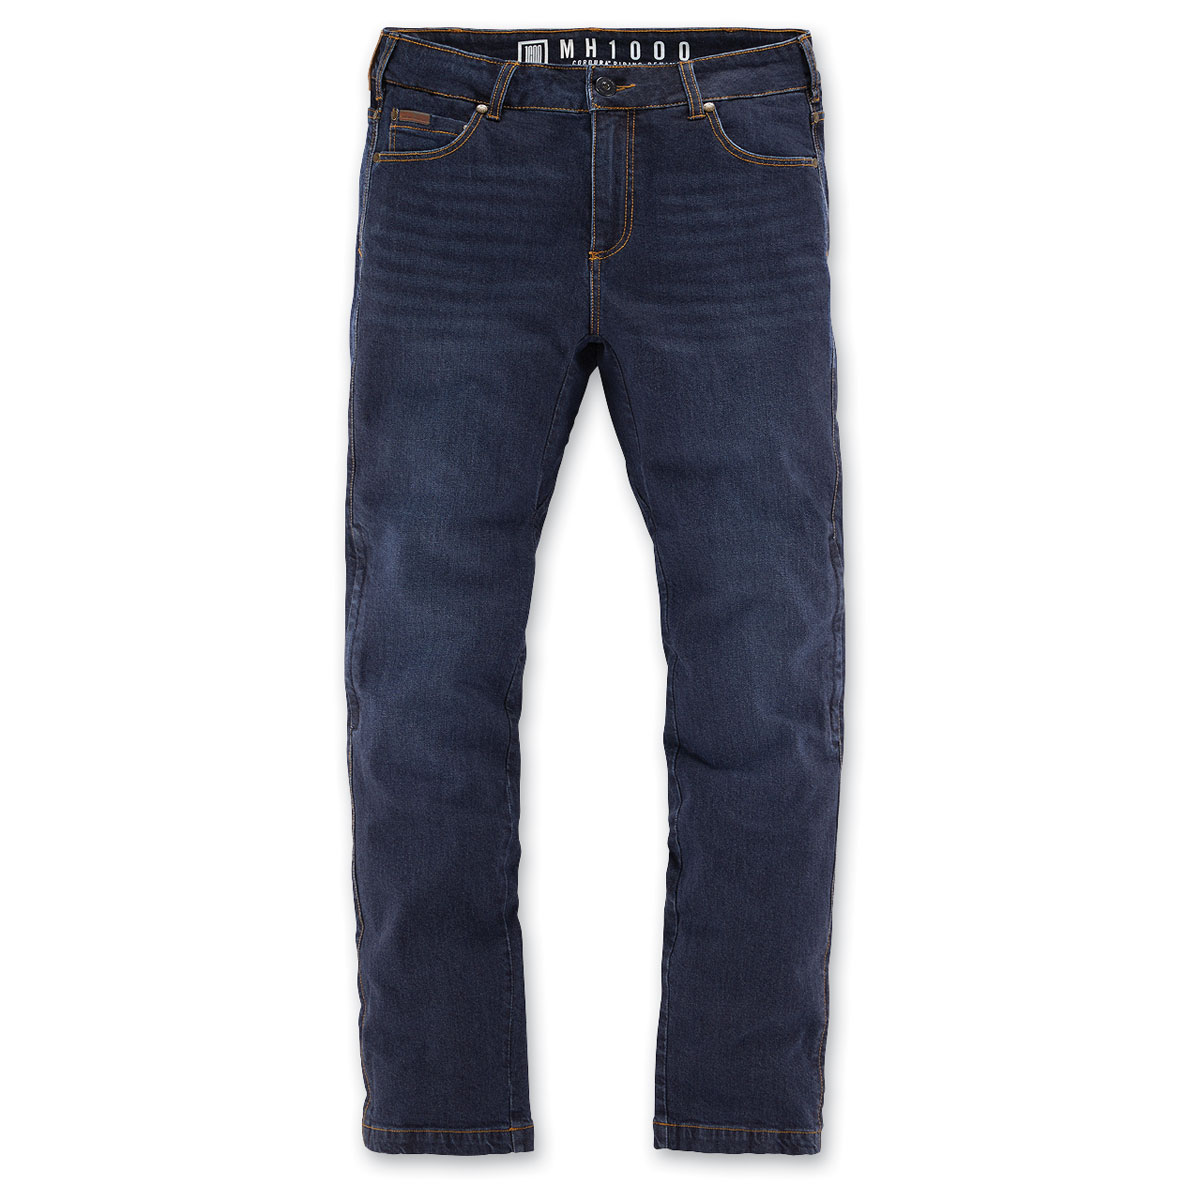 ICON One Thousand Men's MH1000 Blue Riding Jeans